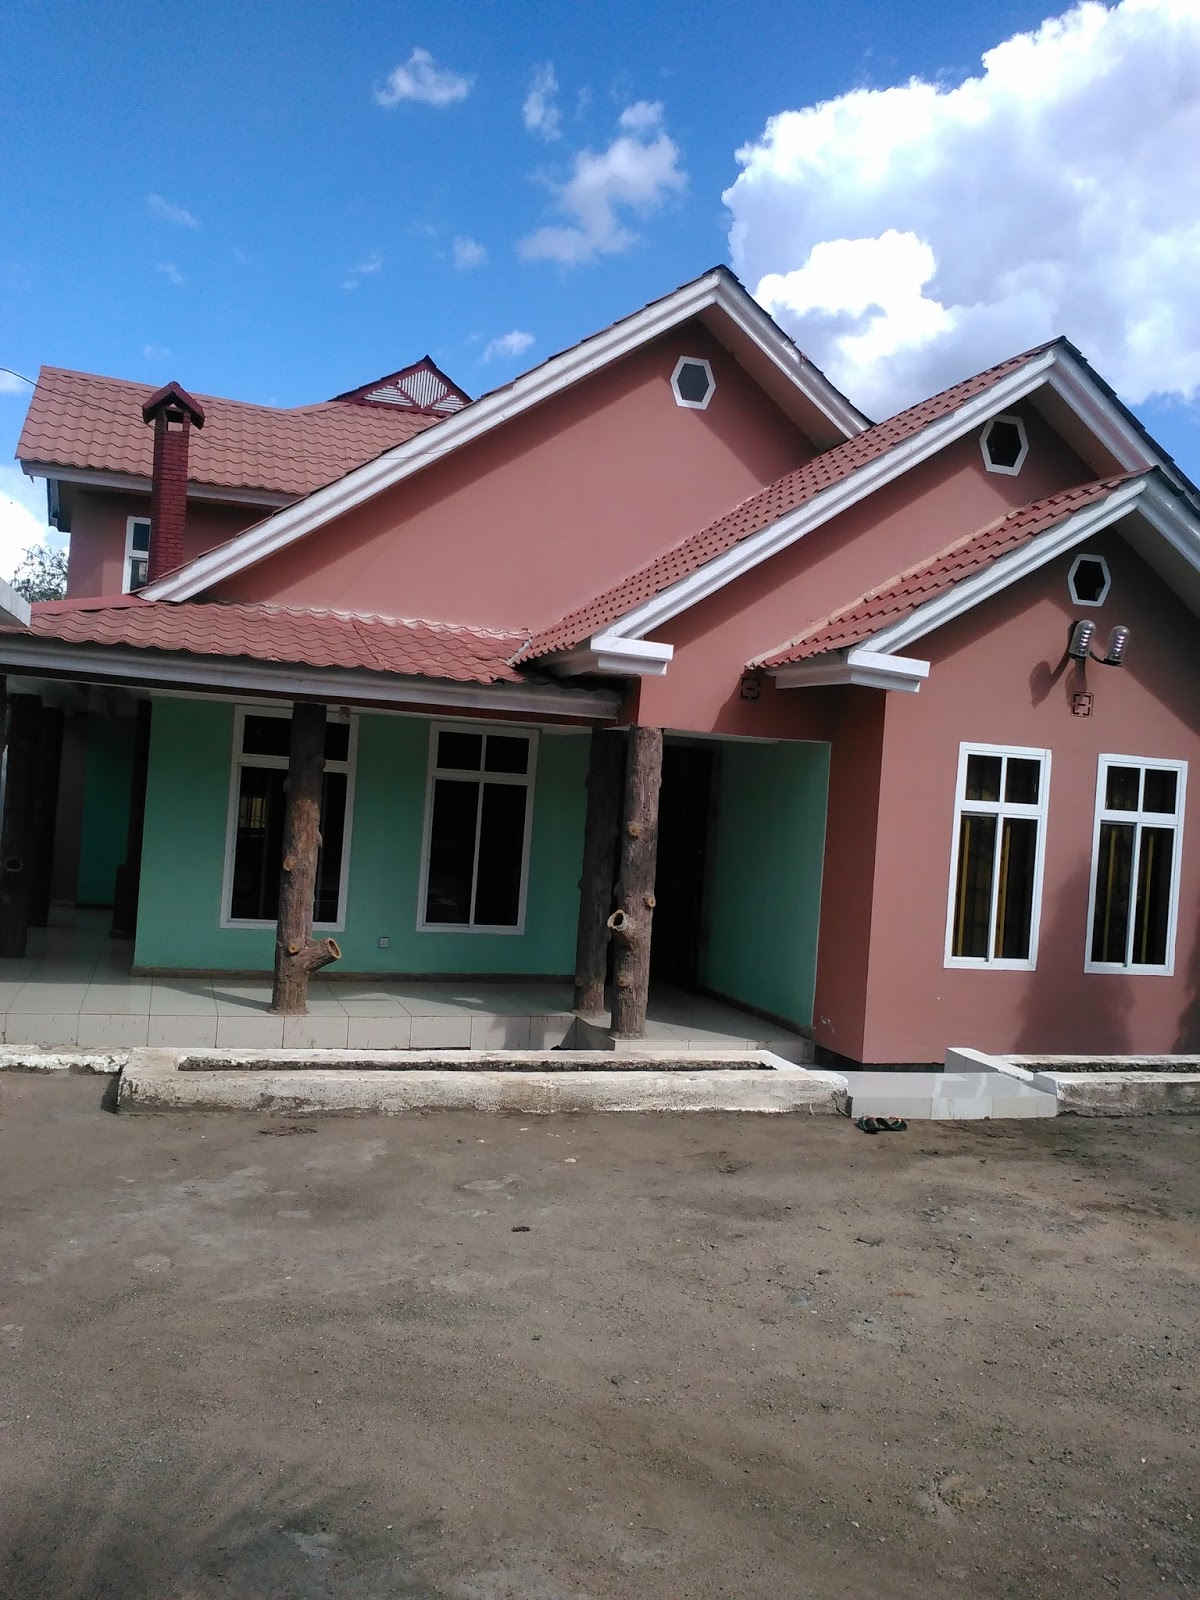 Rent House In Tanzania Arusha Rent Houses, Houses For Sale